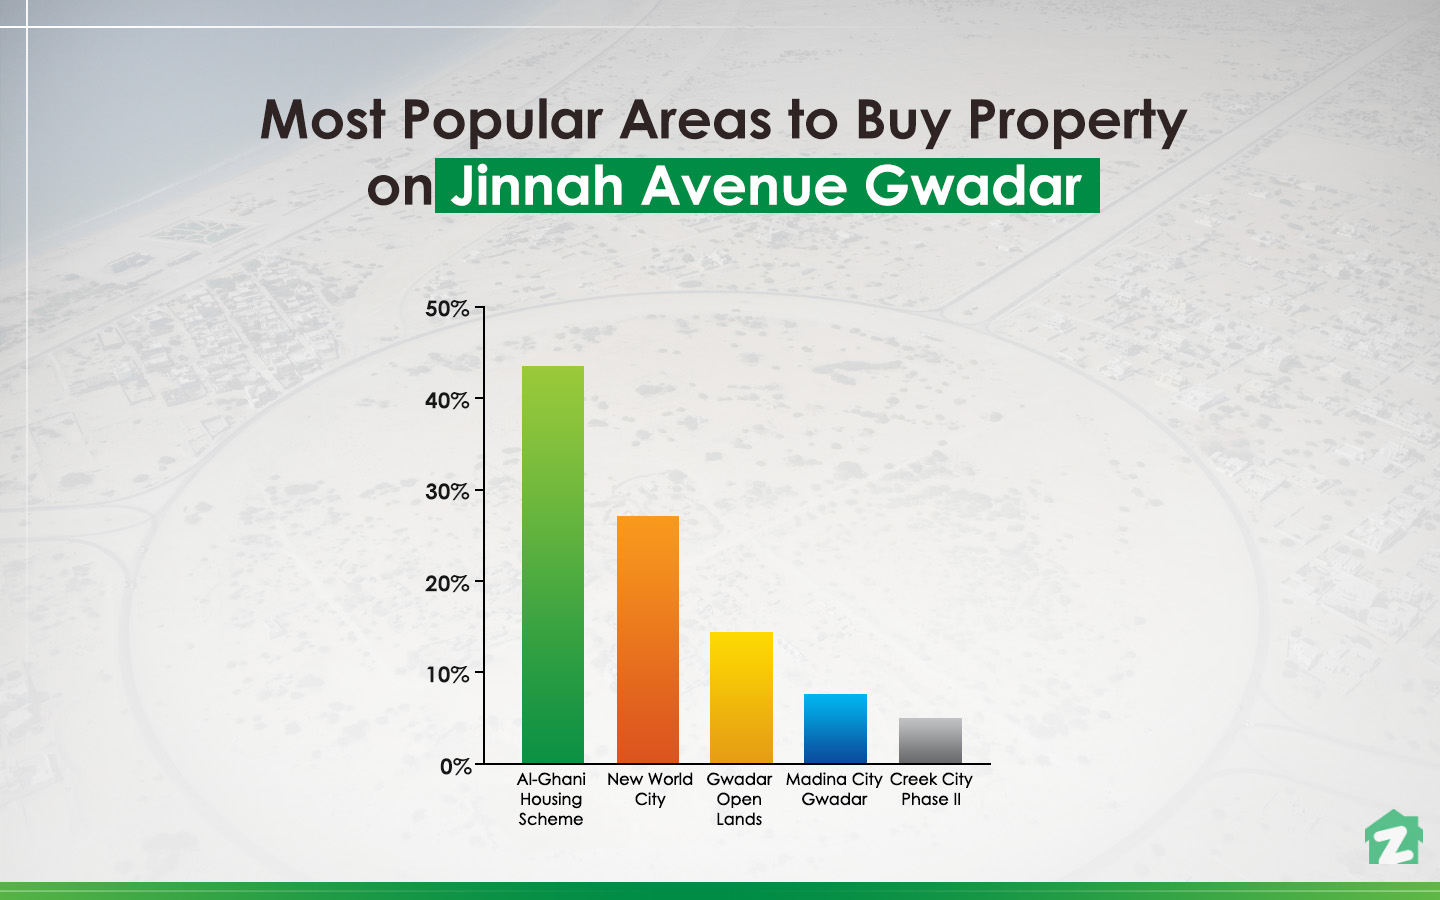 Al-Ghani Housing Scheme is the most popular area to buy property on Jinnah Avenue, Gwadar.